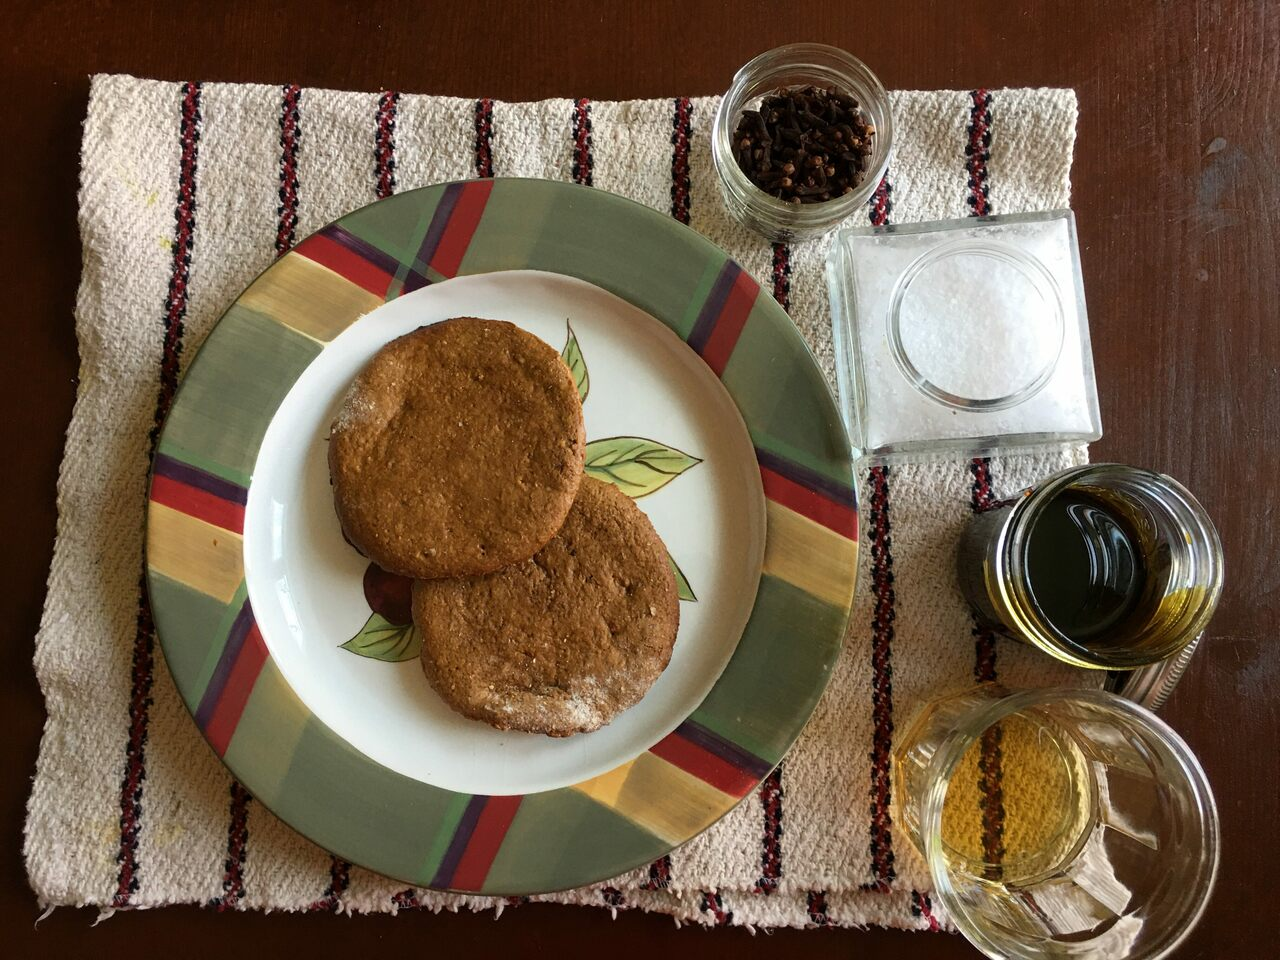 The cookies' two signature ingredients, rum and molasses, demonstrate the deep relationship between New England economy and cuisine, and slavery.